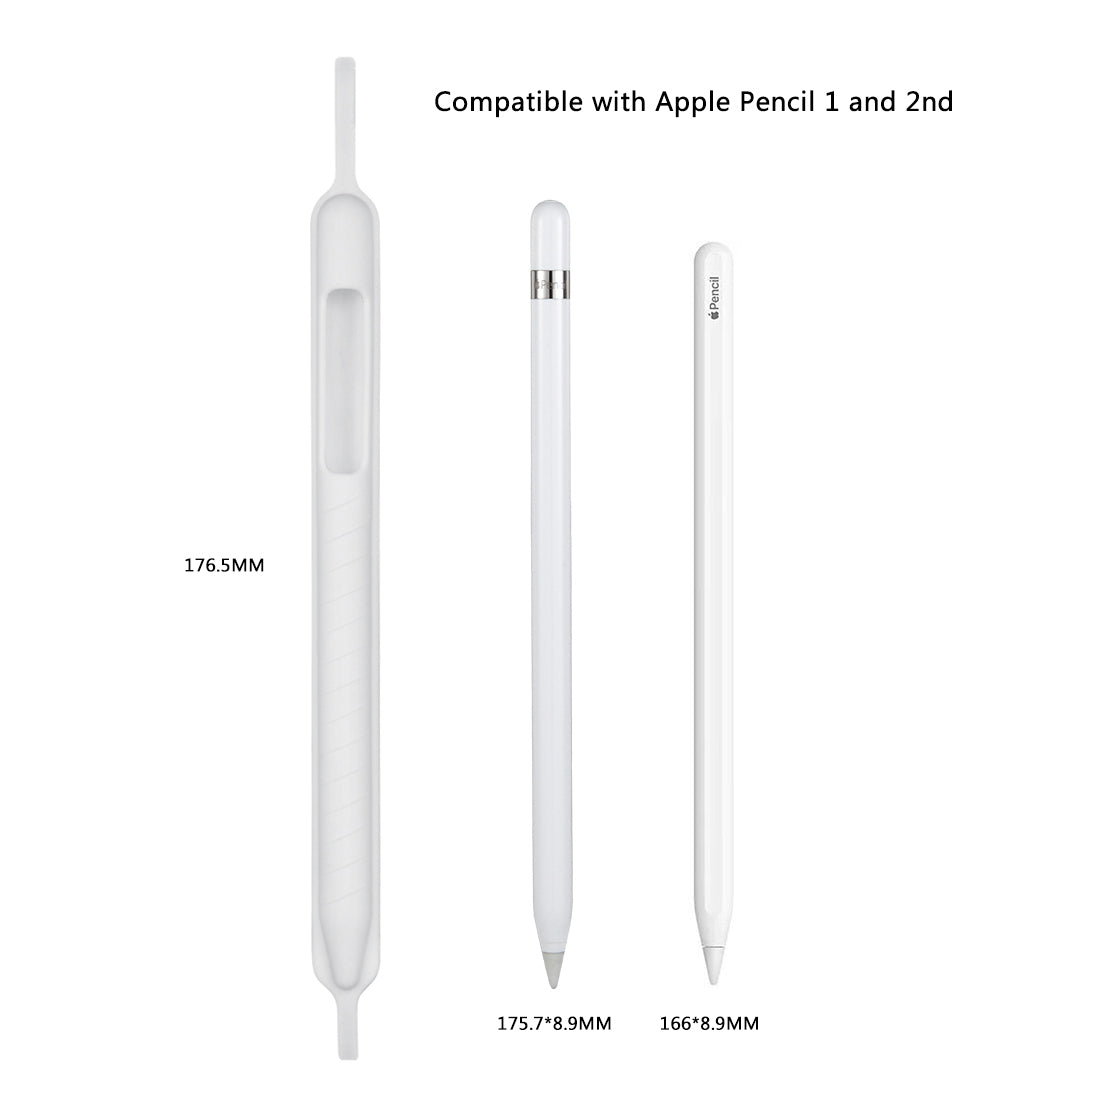 Apple Pencil Shockproof Soft Silicone Protective Cap Holder Sleeve Pouch Cover for iPad Pro 9.7 / 10.5 / 11 / 12.9 Pencil Accessories (White)